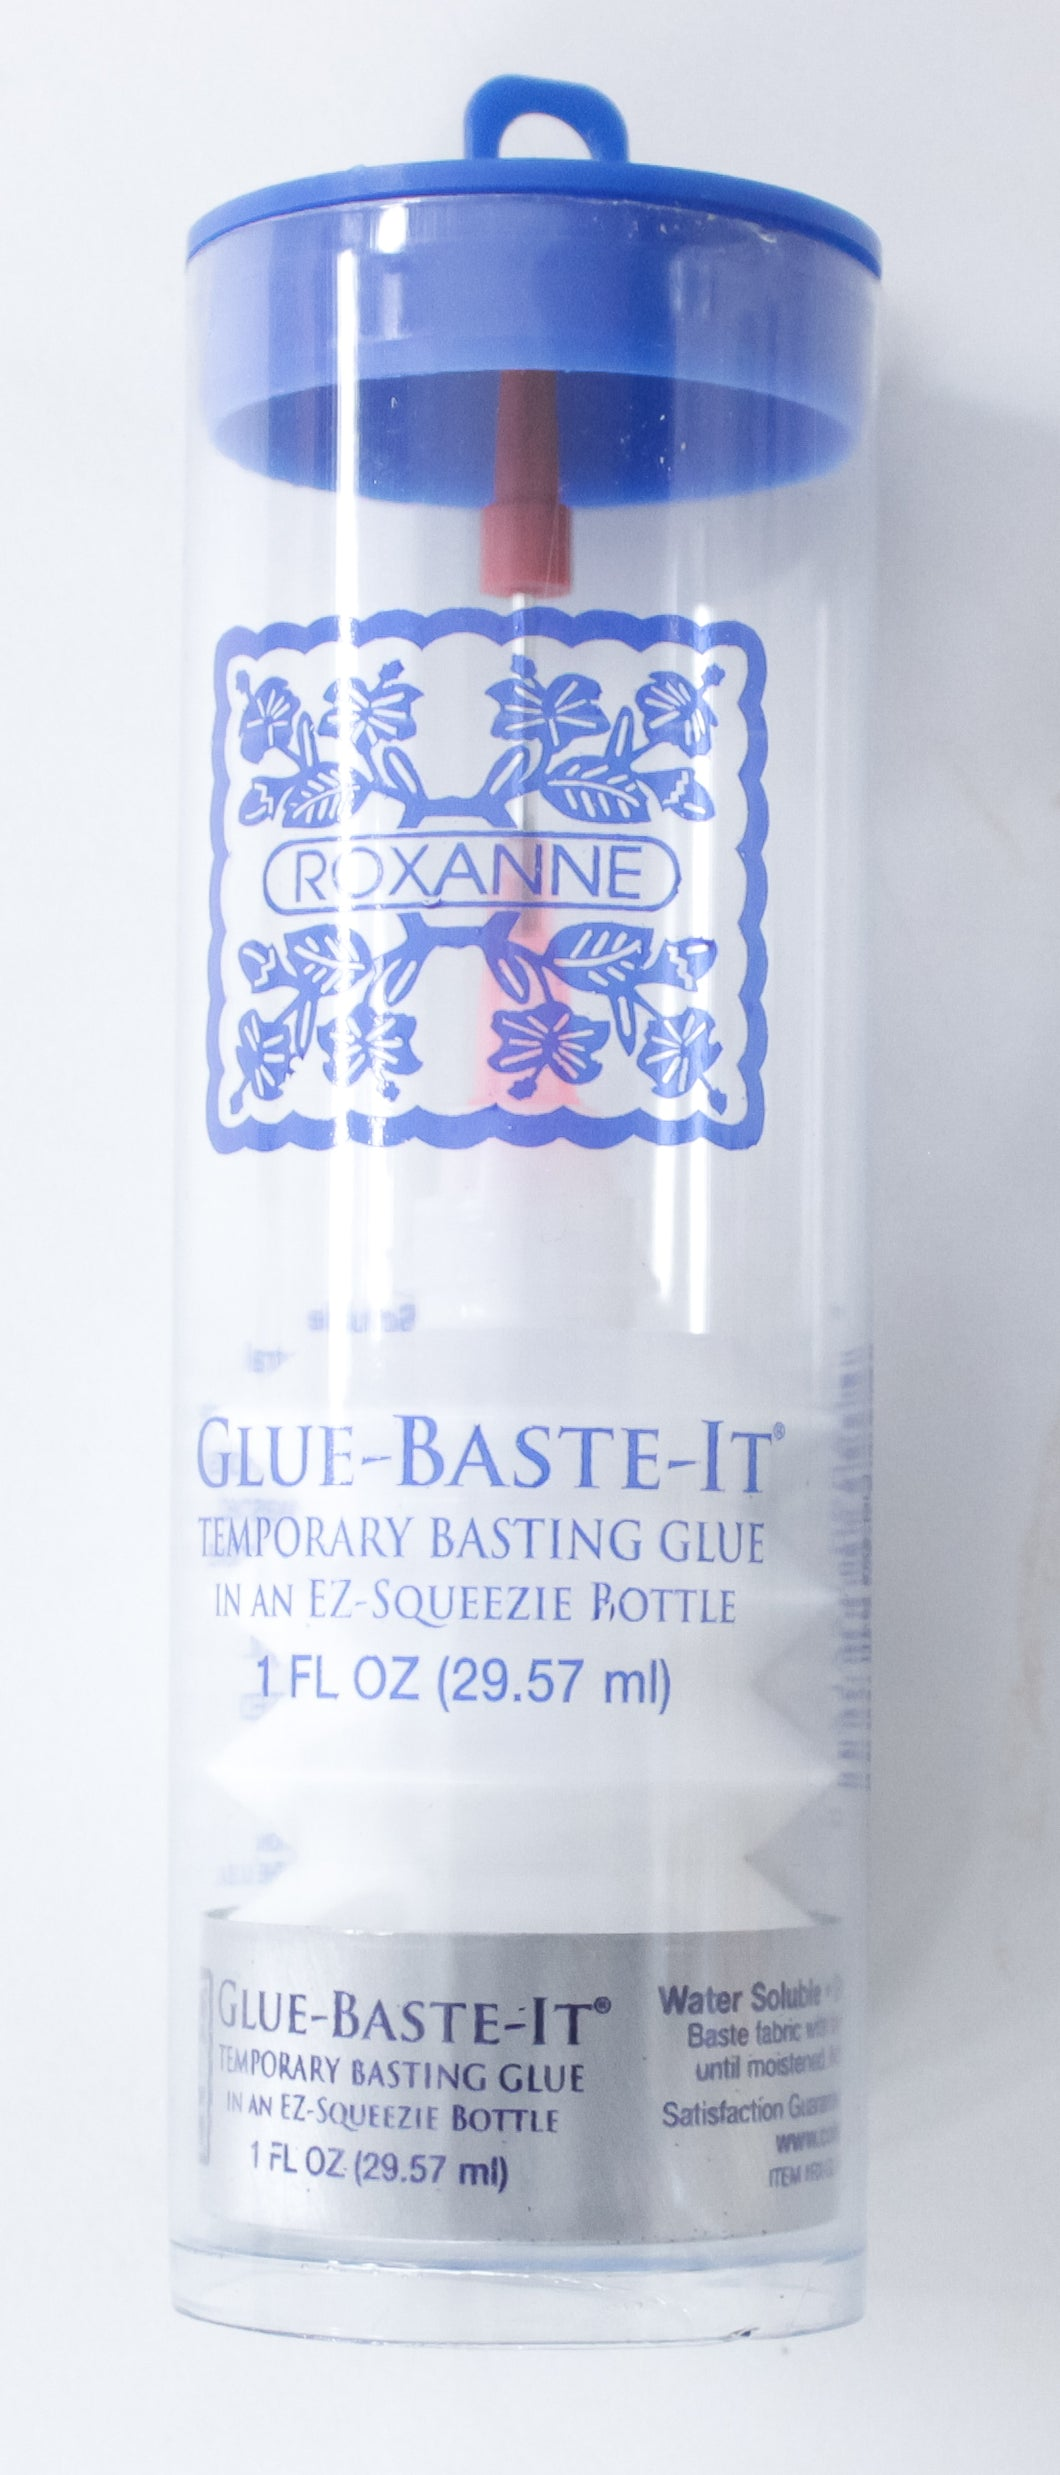 Glue Baste-It